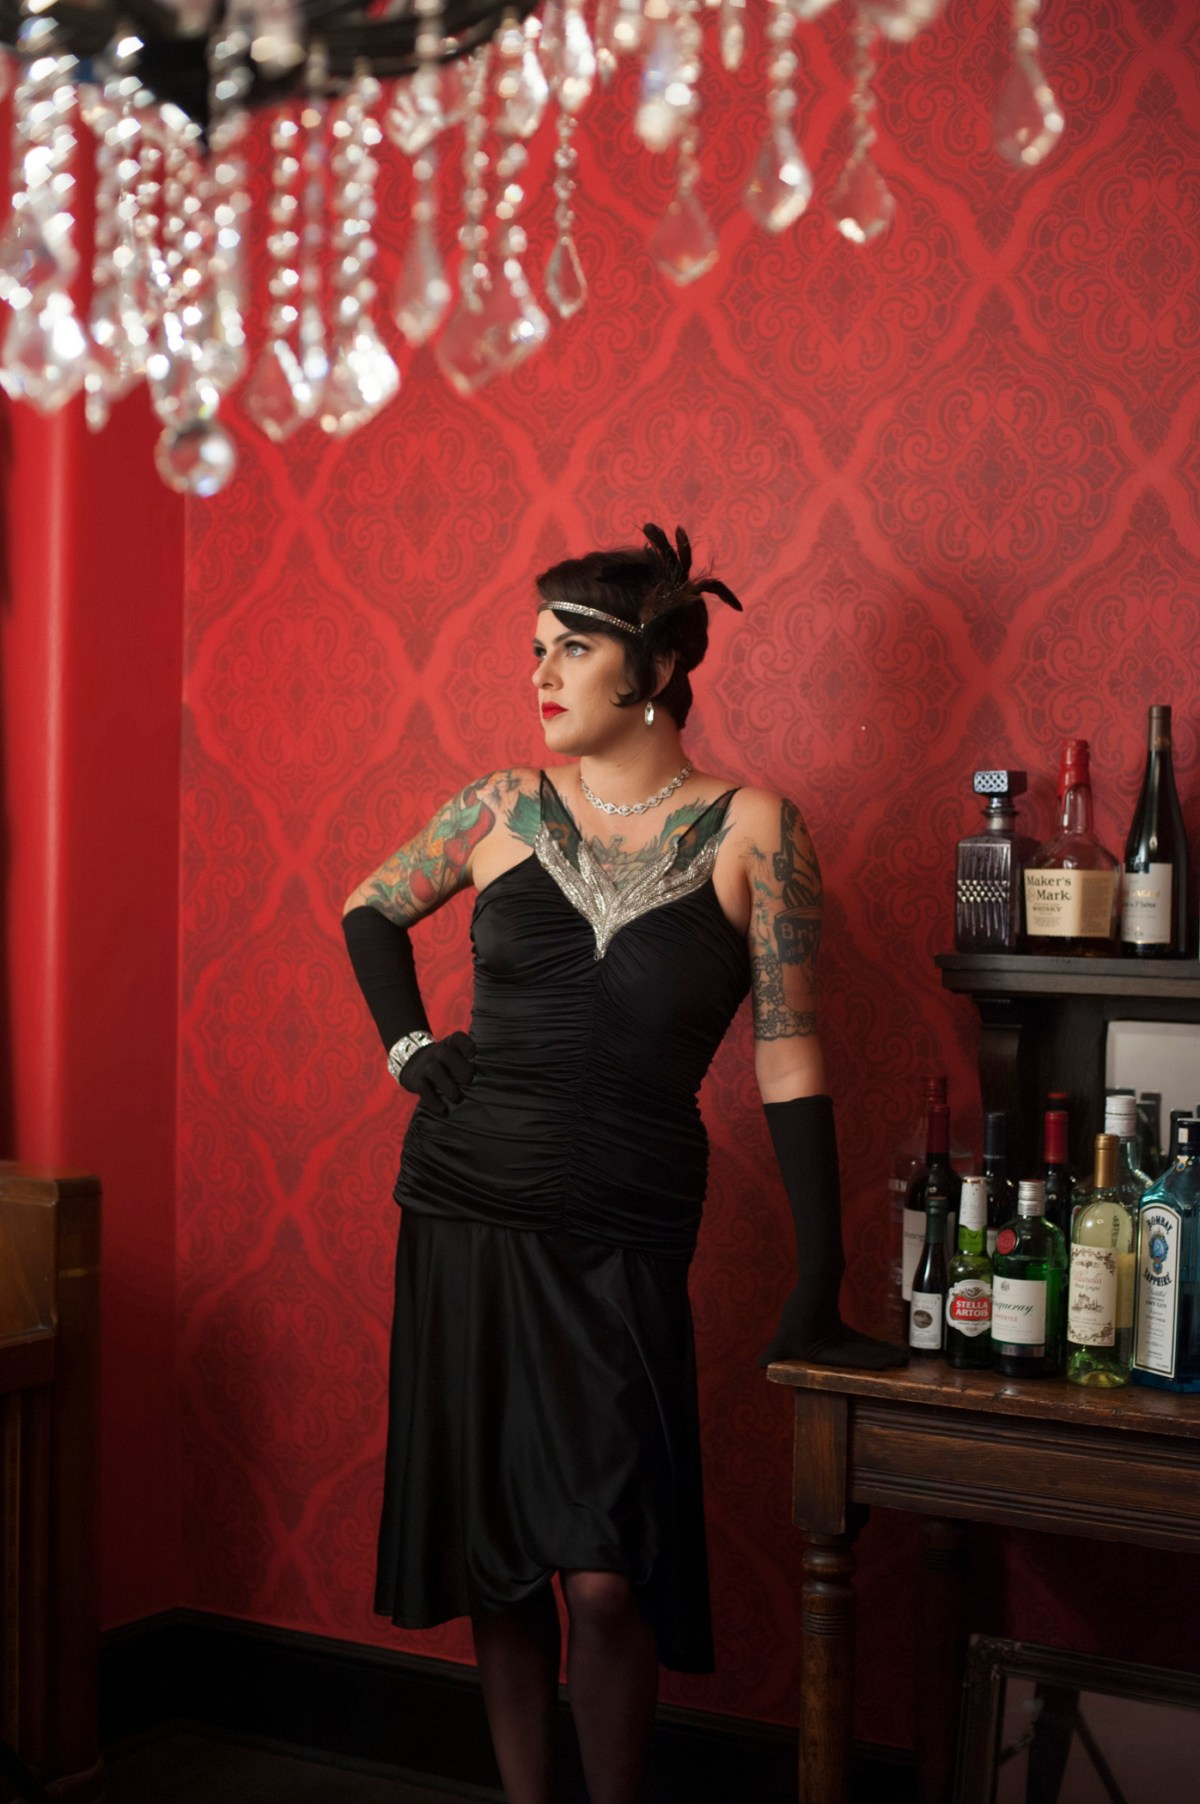 Jesse Hyde of Hot Tomato rockin' her 20's look.